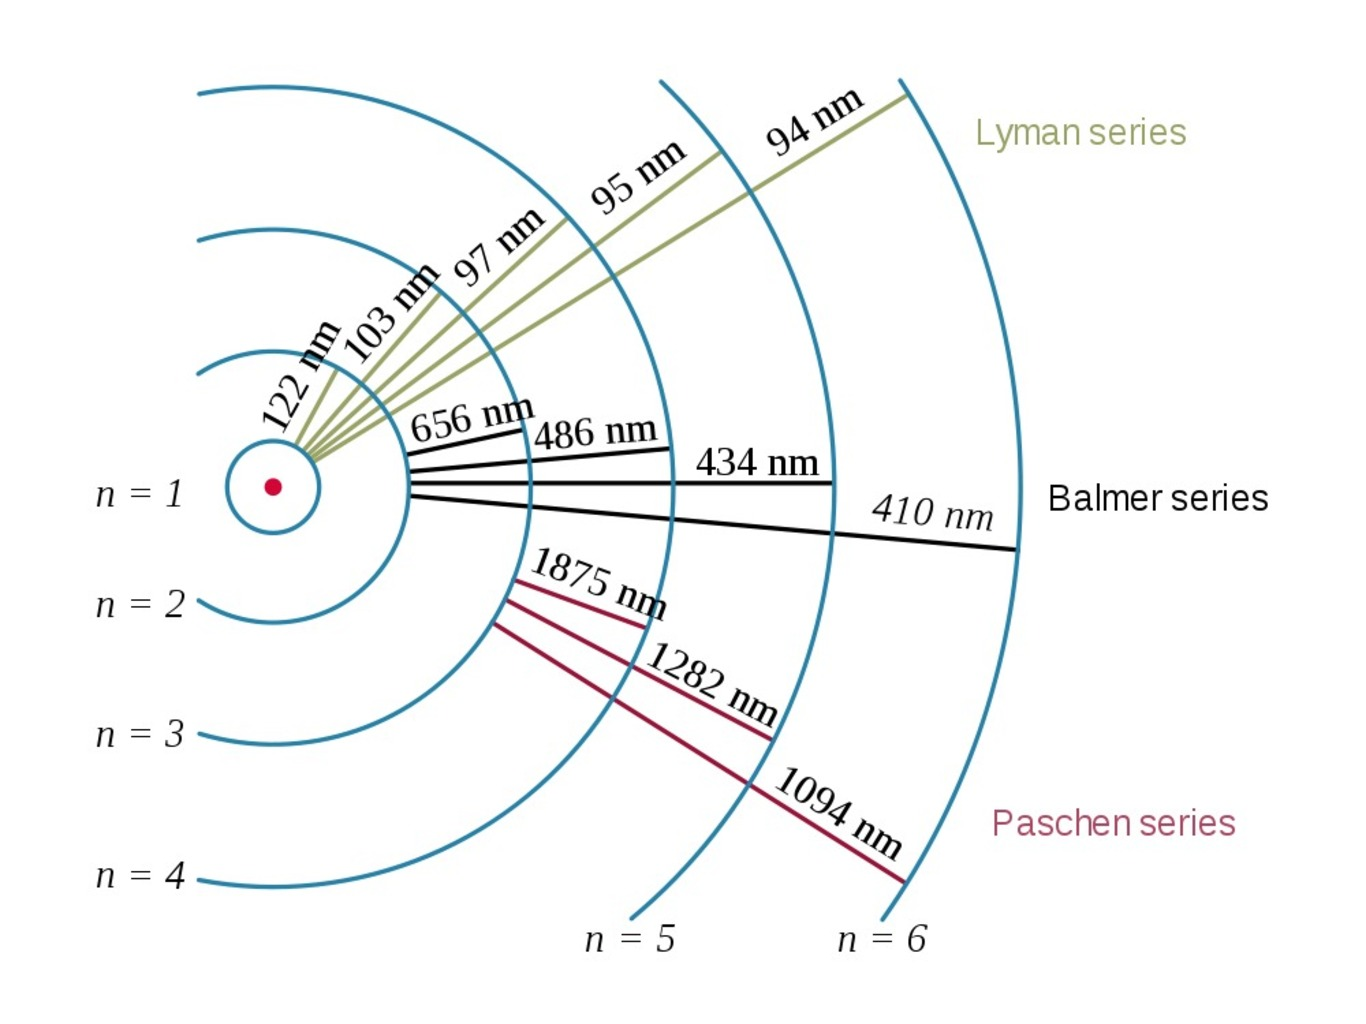 Updating The Textbook Is The Radius Of A Proton Wrong